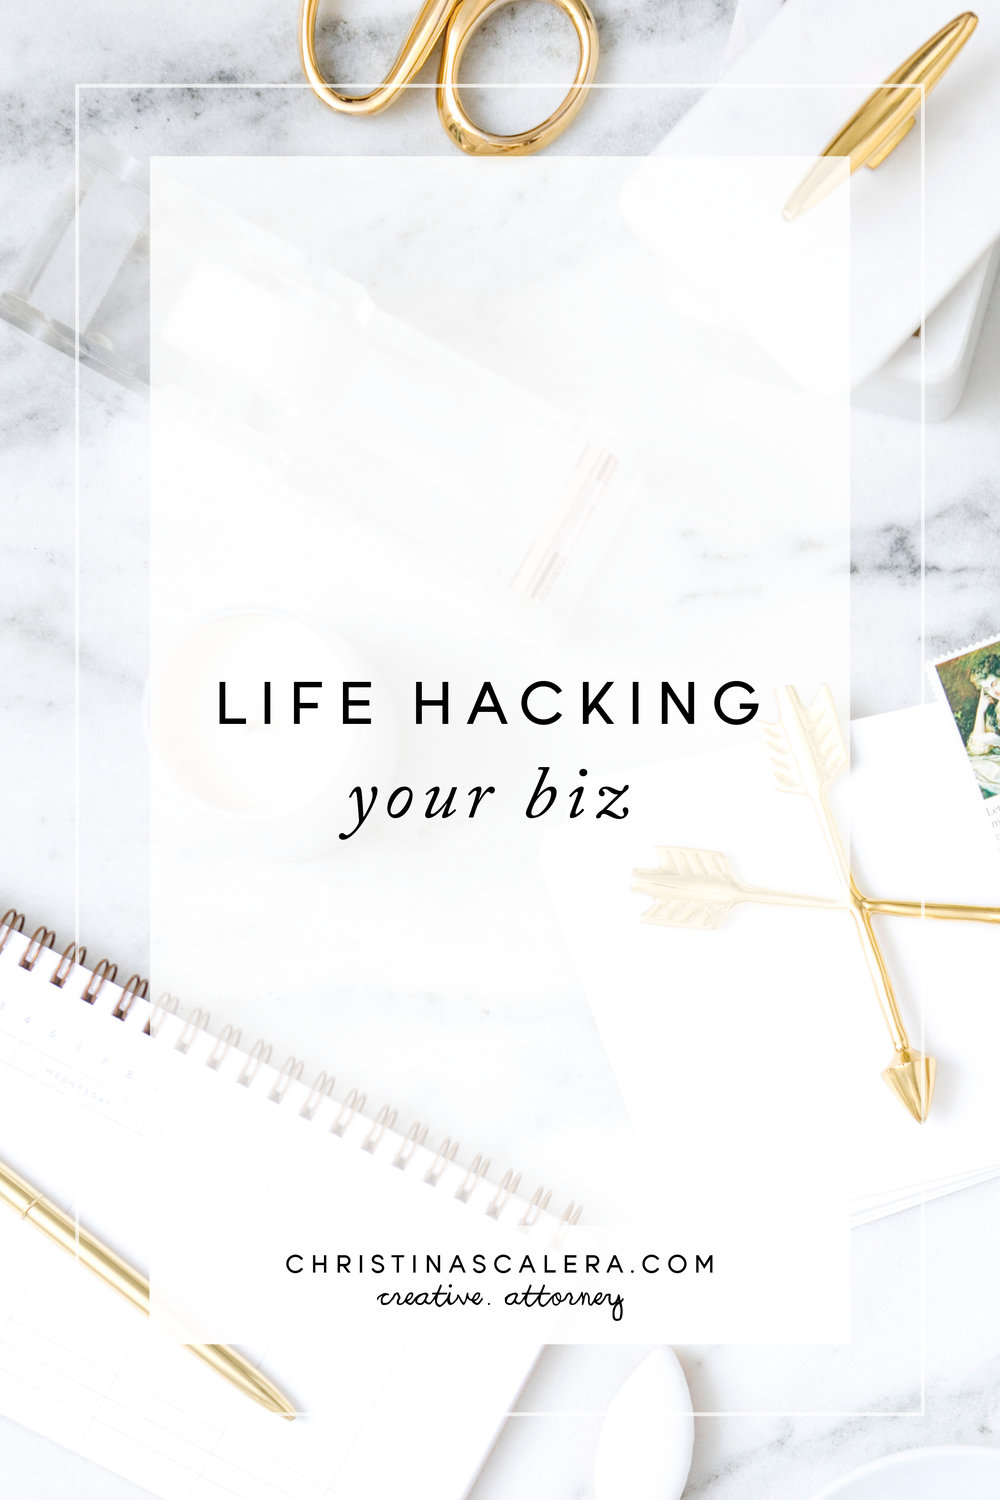 Life hacking your business. Legal tips for Creatives.